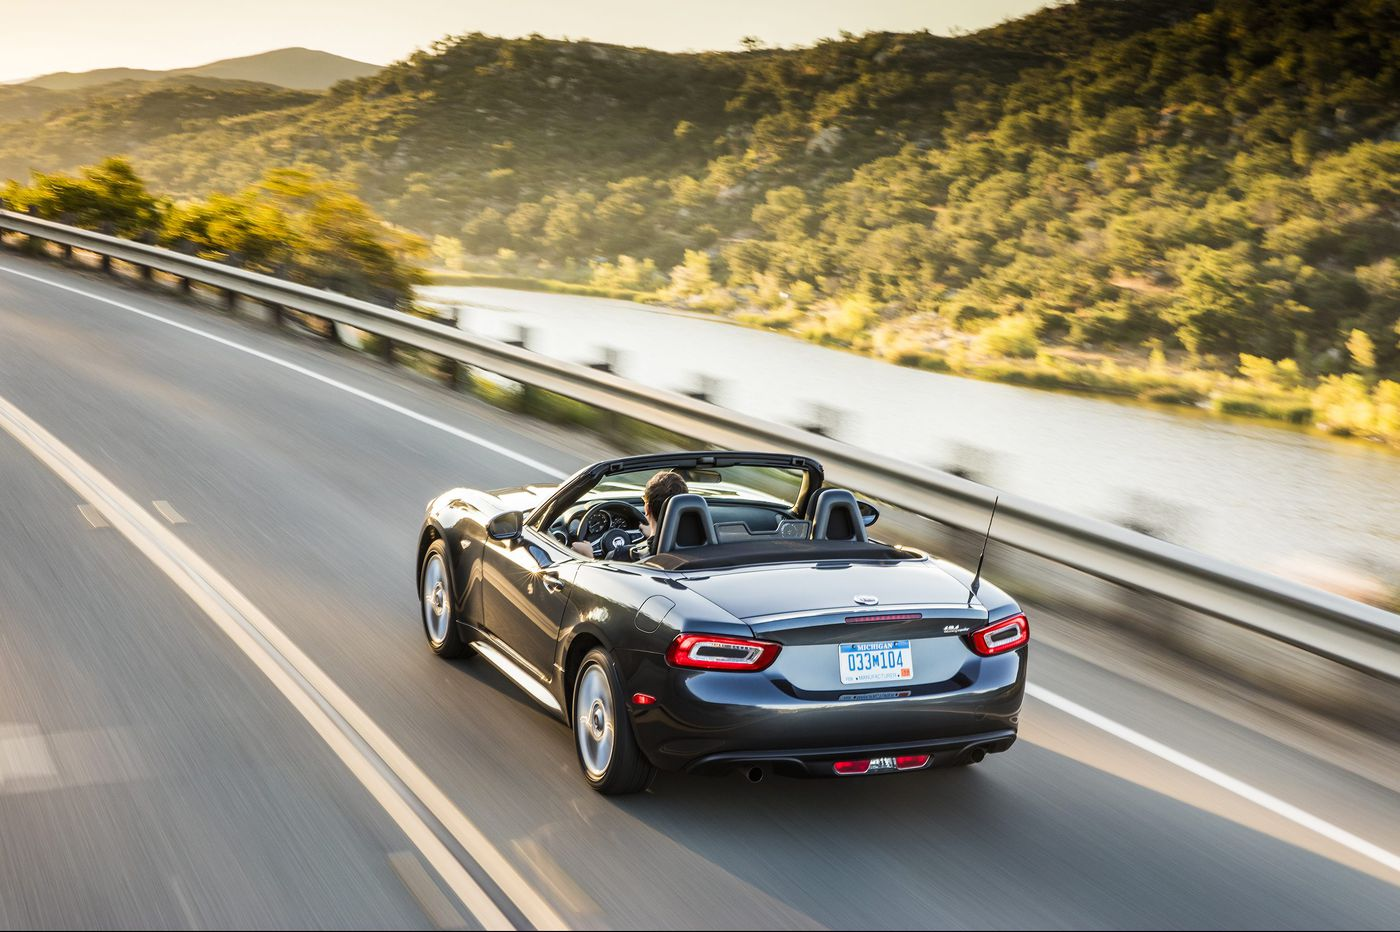 Three two-seat roadsters with a base price under $42,000 | Al Haas